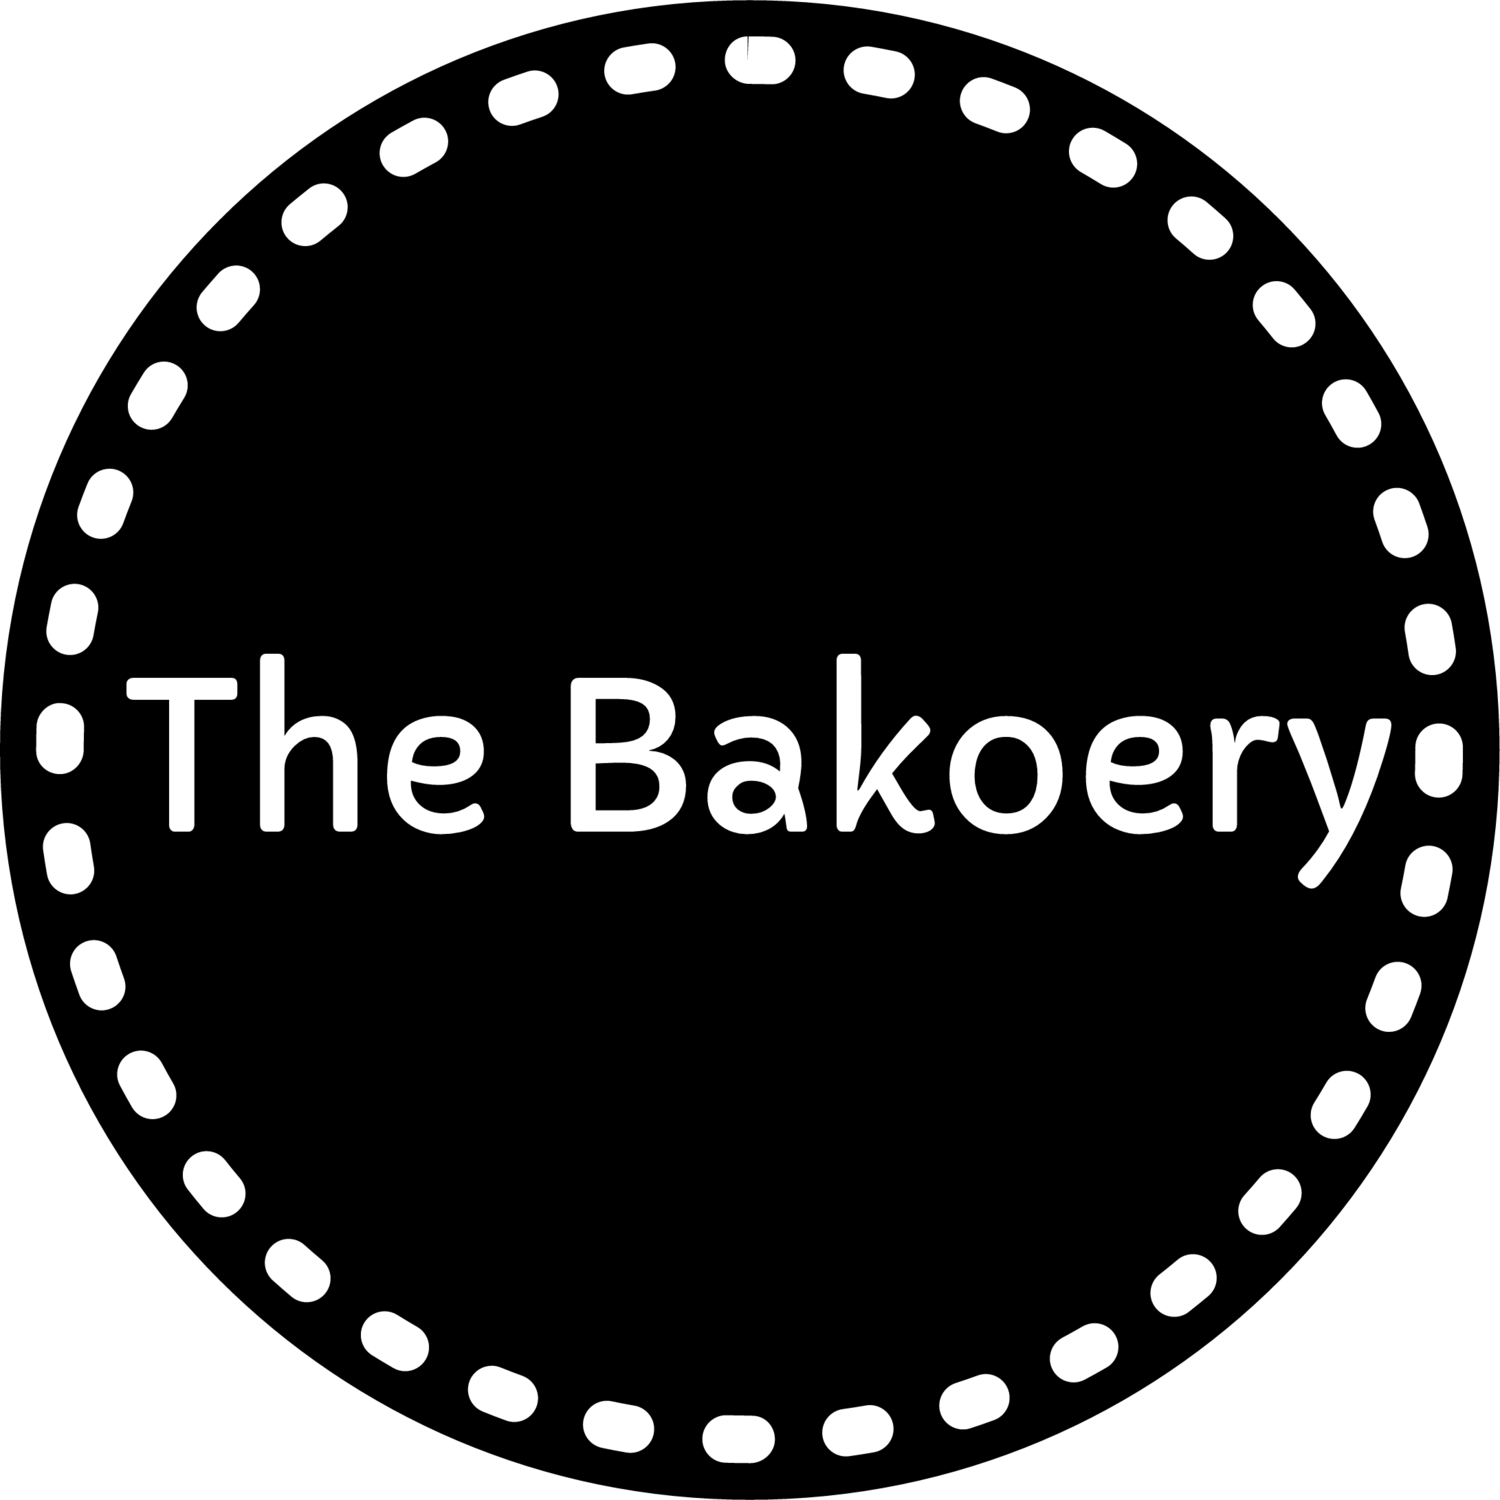 The Bakoery